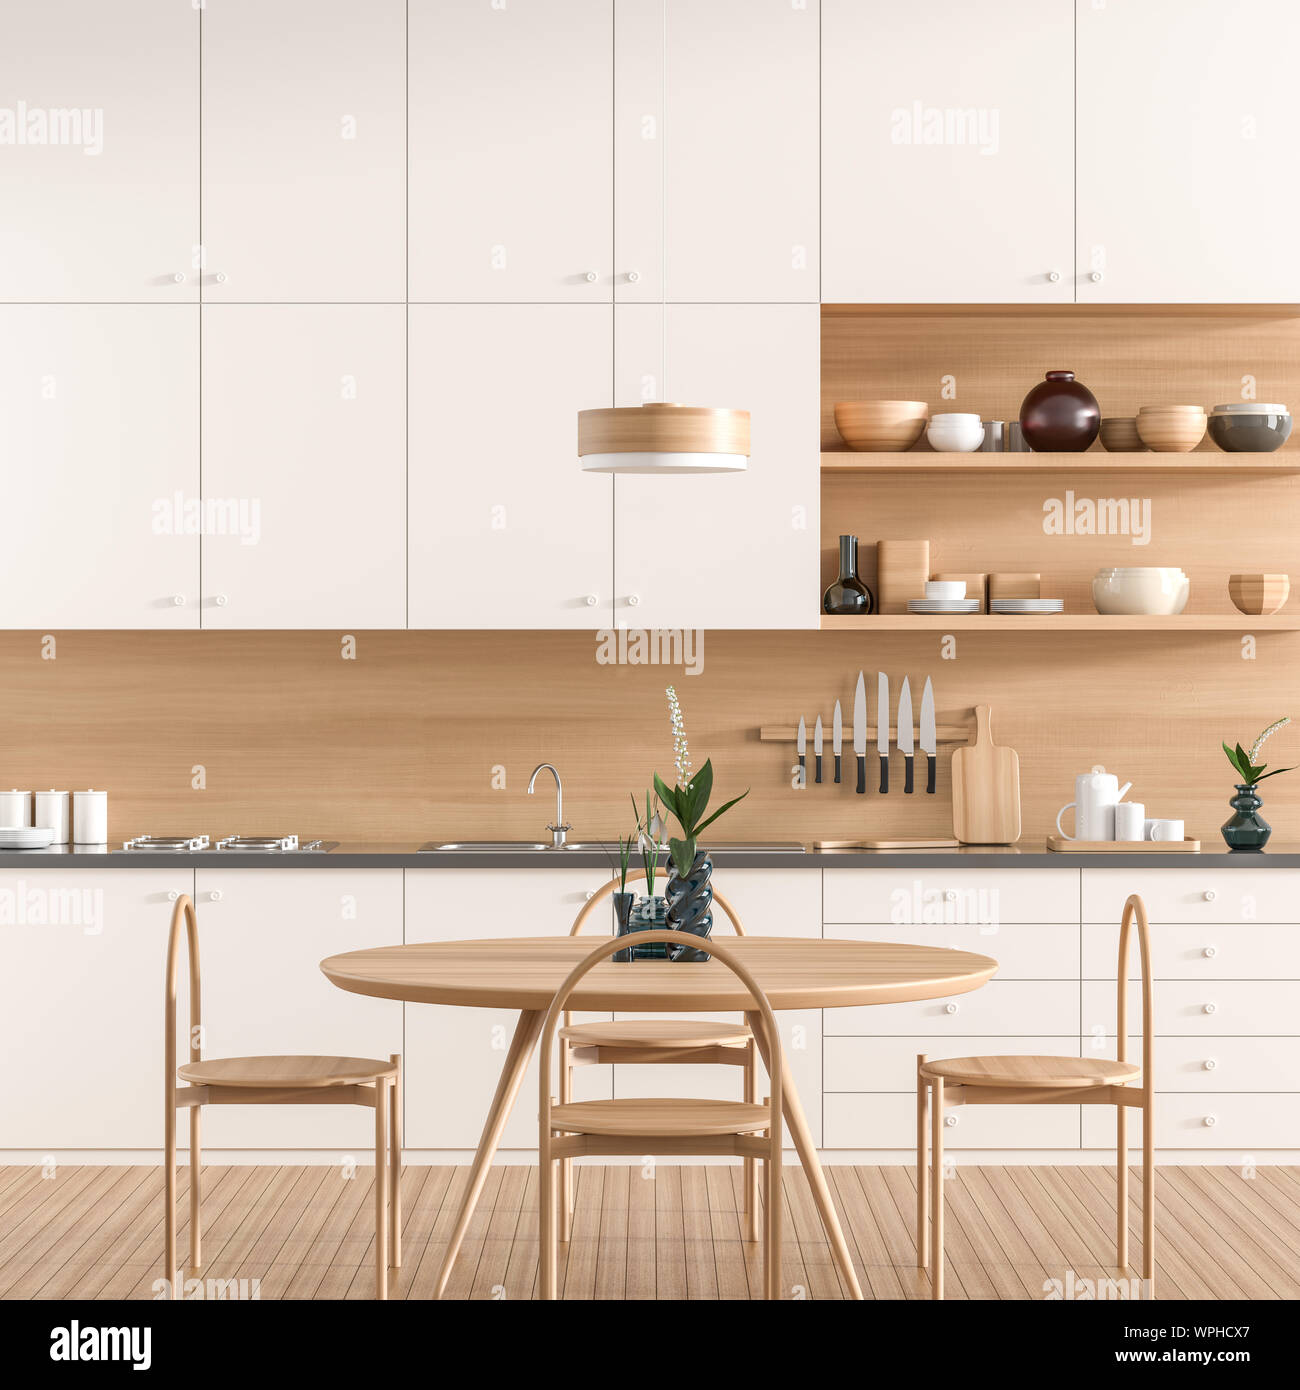 Scandinavian Style Modern Kitchen With Dining Table Modern Kitchen Design With Wooden Furnitures 3d Illustration Stock Photo Alamy